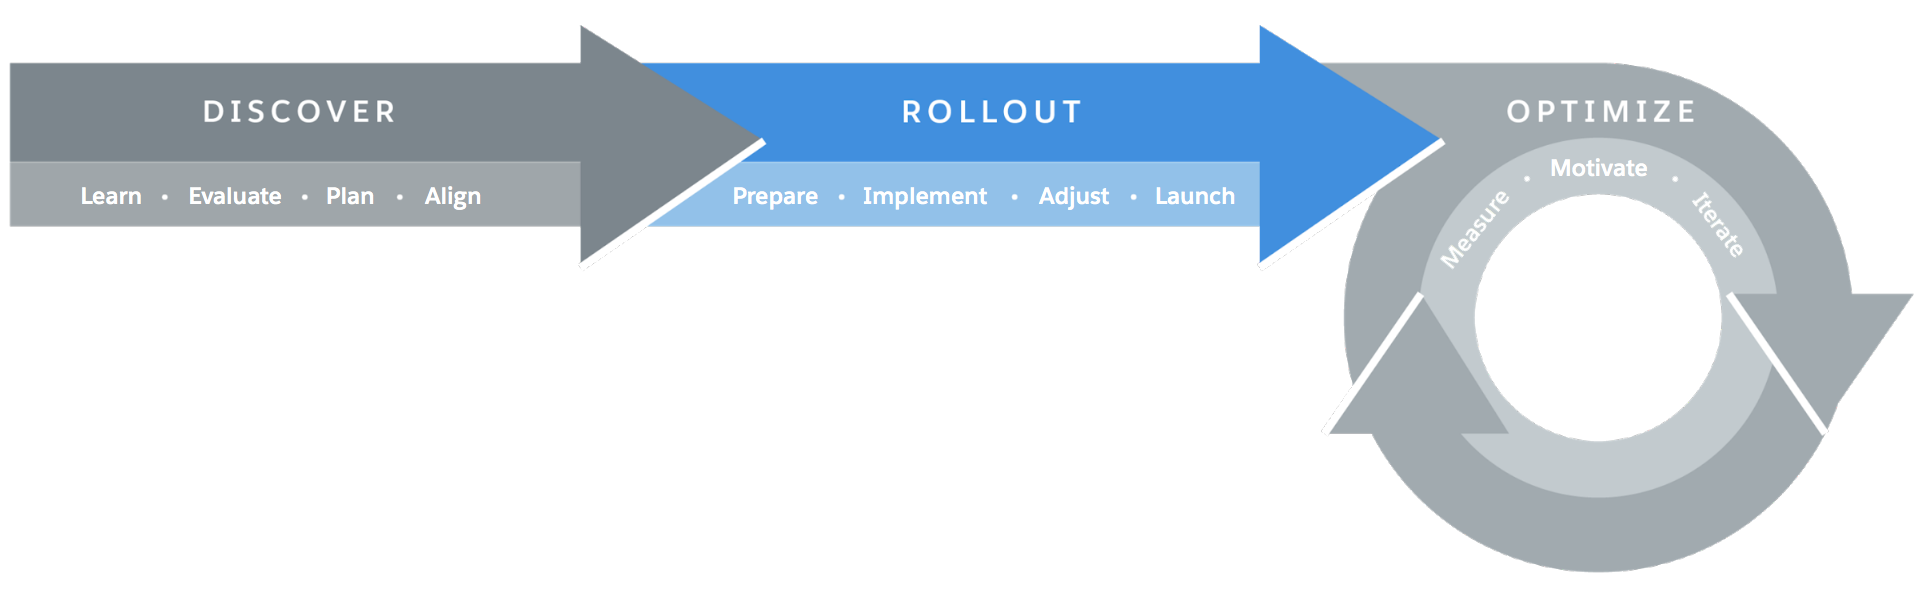 Visual representation of the Lightning Experience transition framework, with the Roll Out phase highlighted